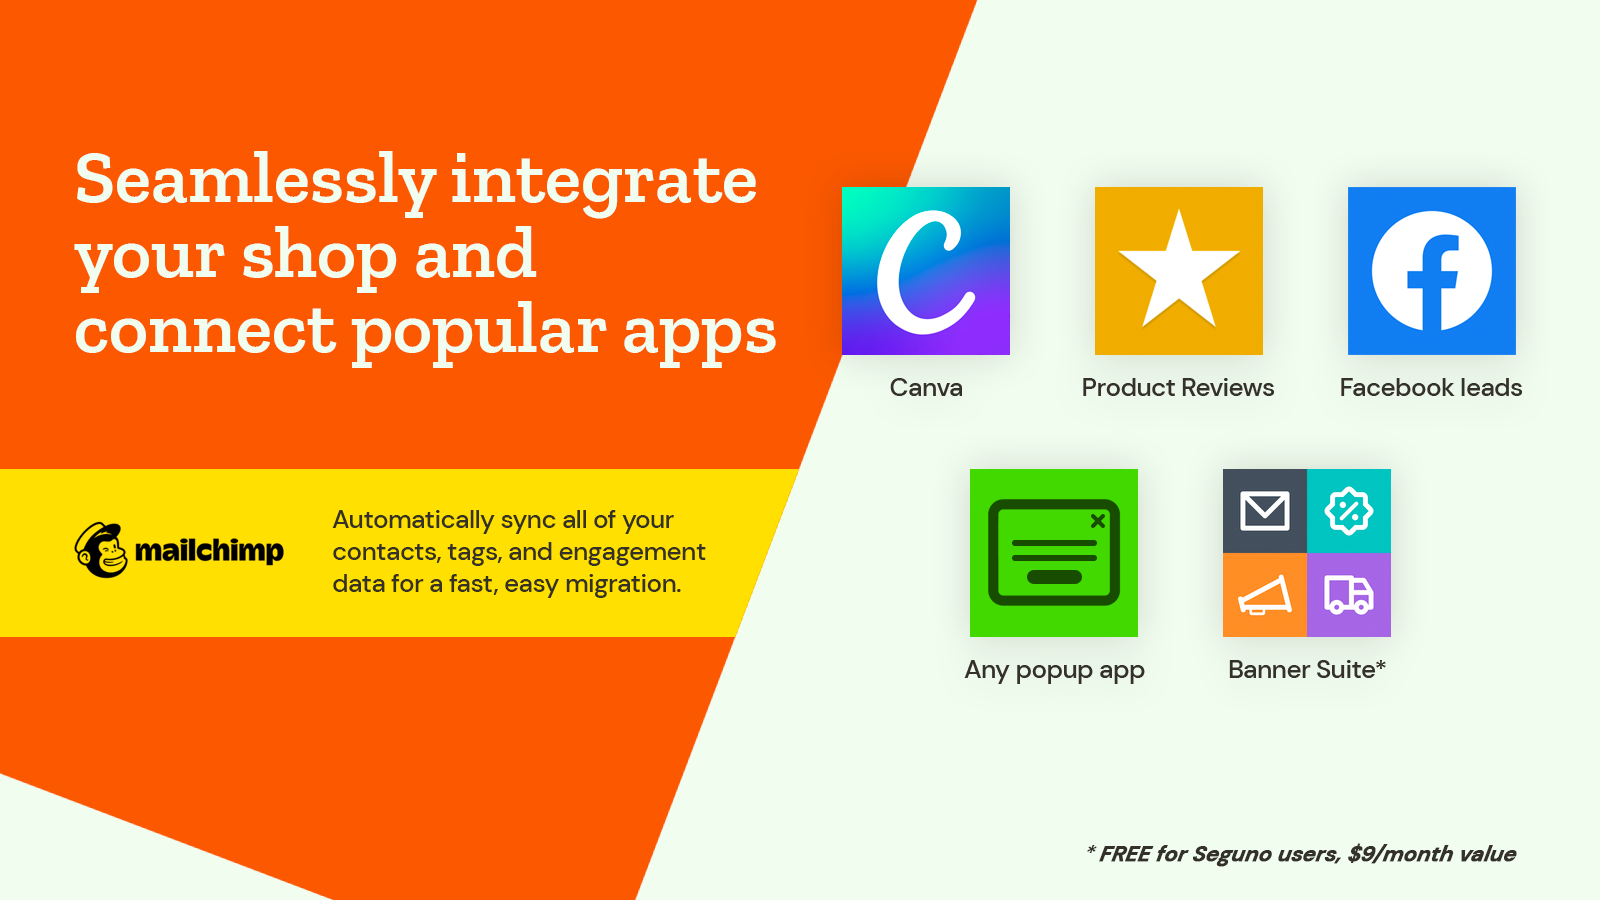 Integrates with Mailchimp, Product Reviews, Facebook, and Canva